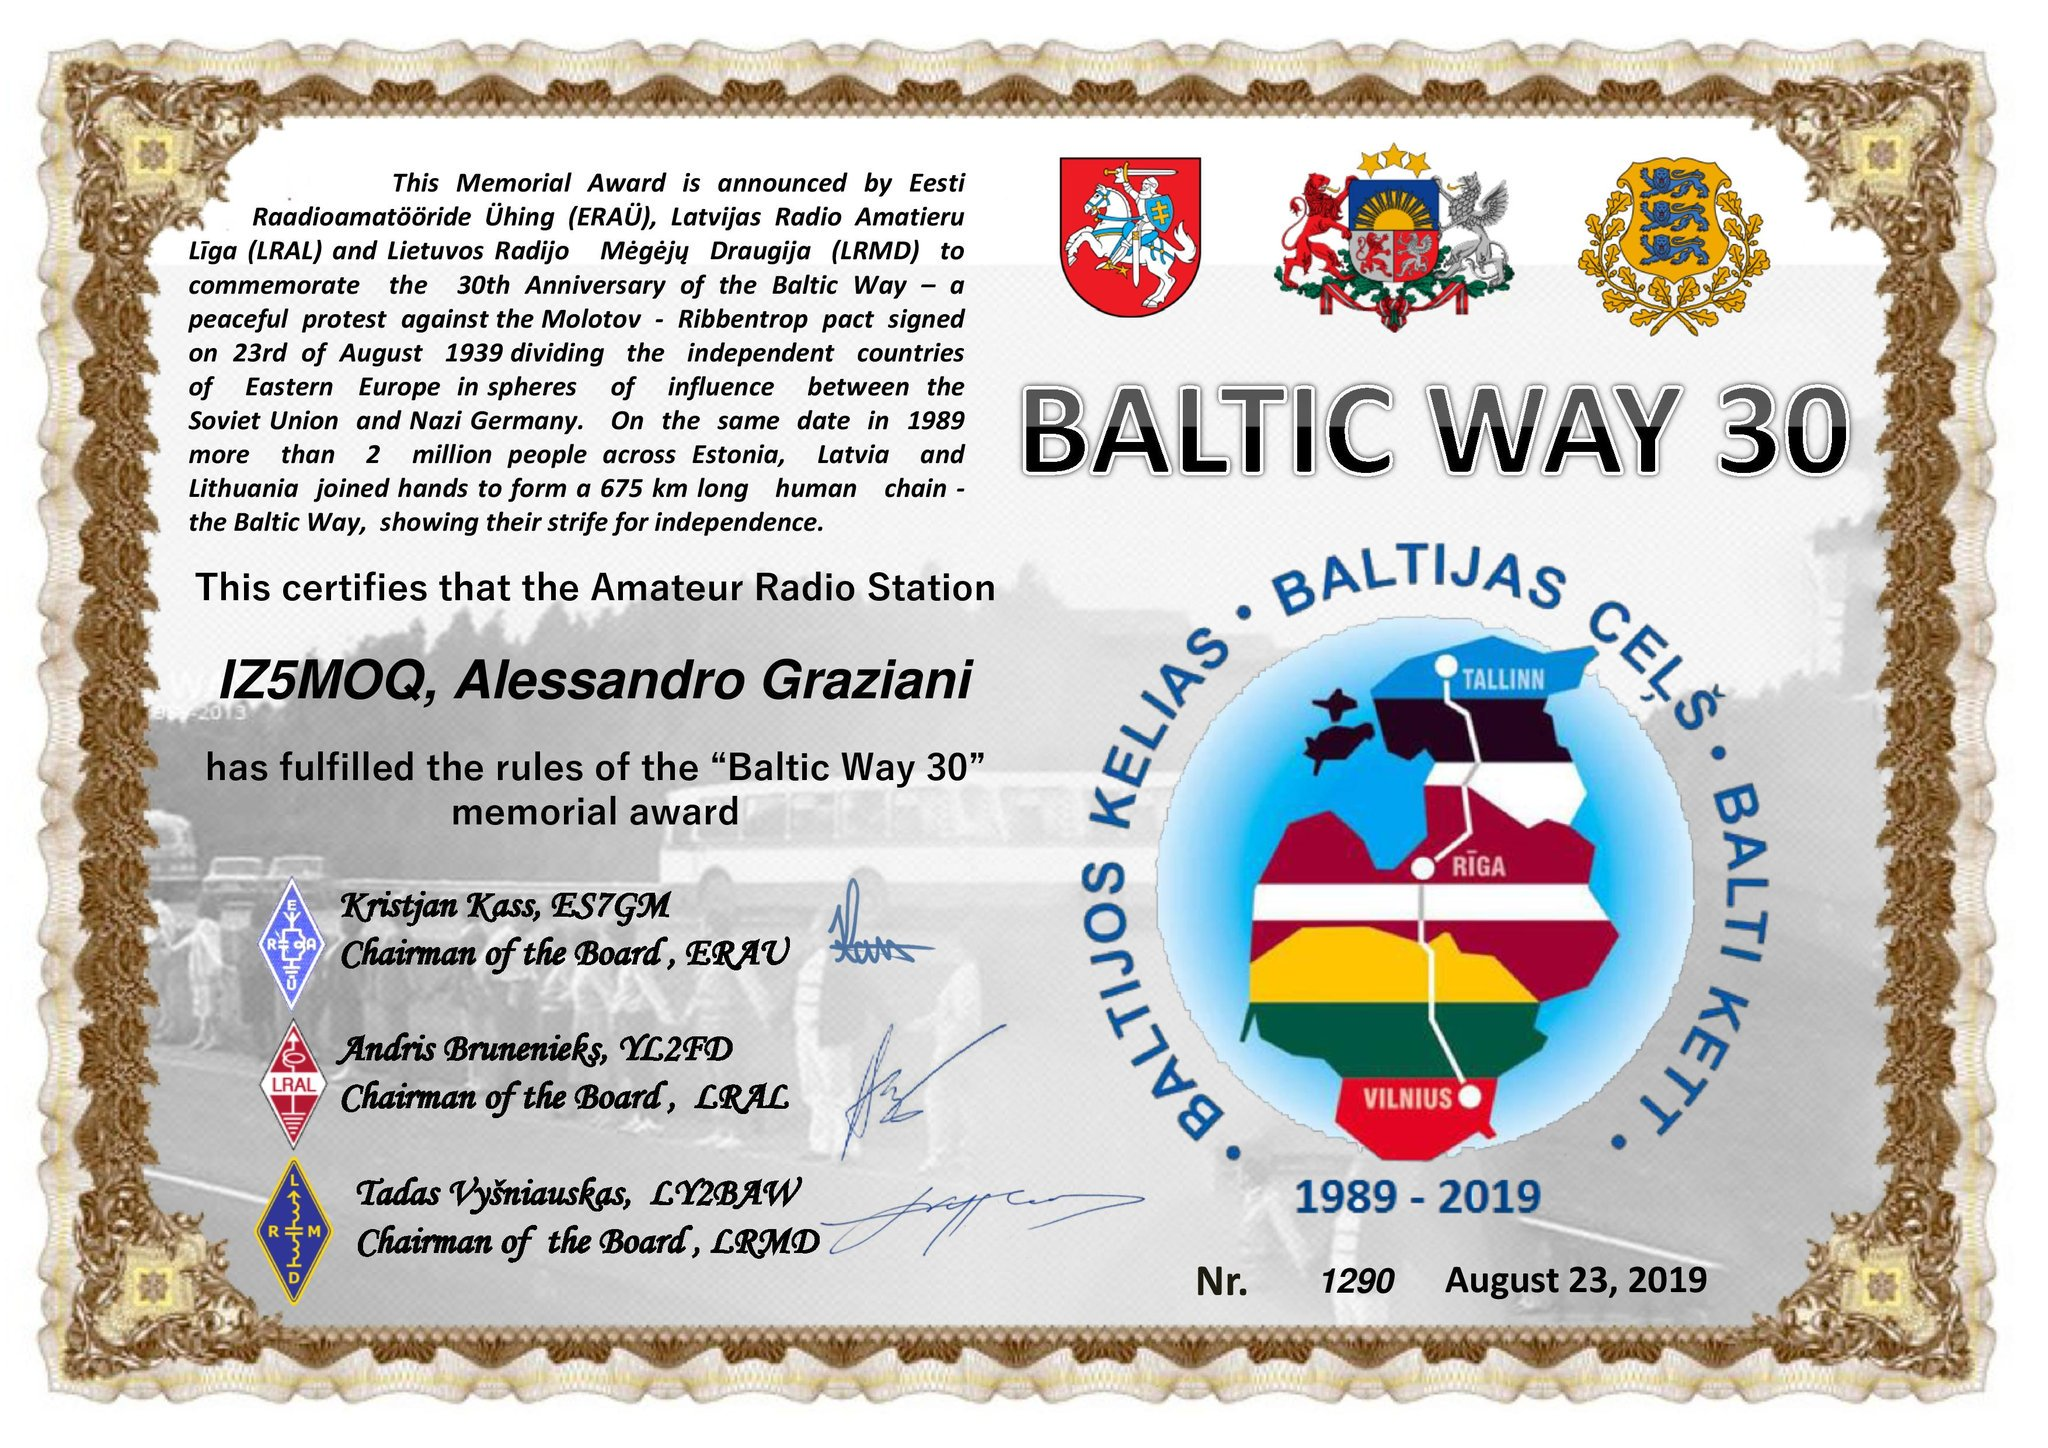 """🌿 ... """"On the same date in 1989 more than 2 million people across #Estonia, #Latvia and #Lithuania joined hands to form a 675 km long #human chain – the#Baltic Way, showing their fight for independence""""  